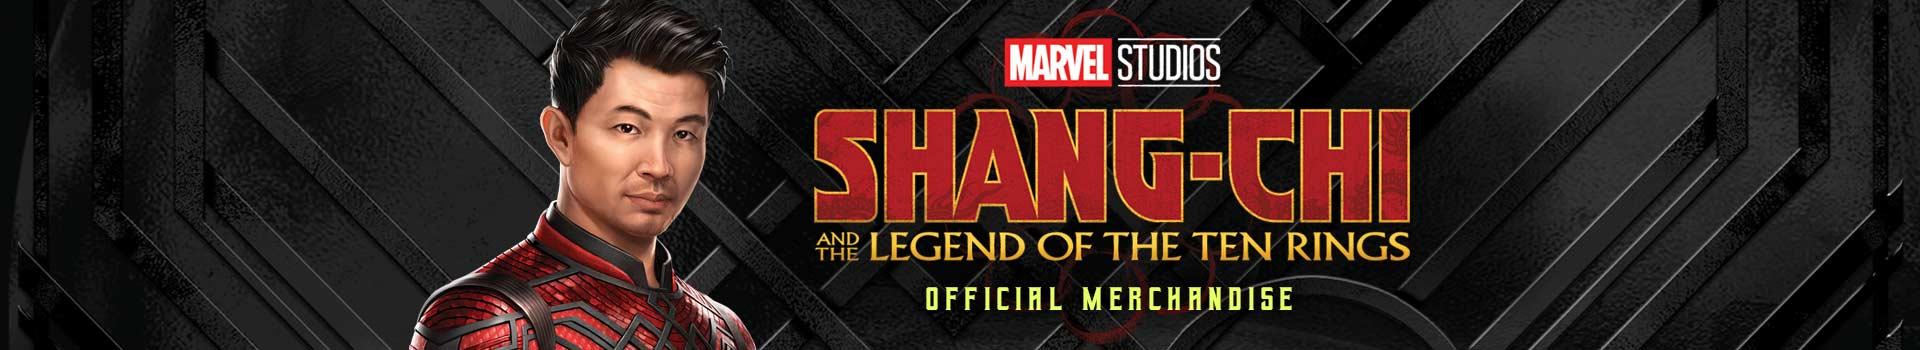 Shang Chi - Official Merchandise